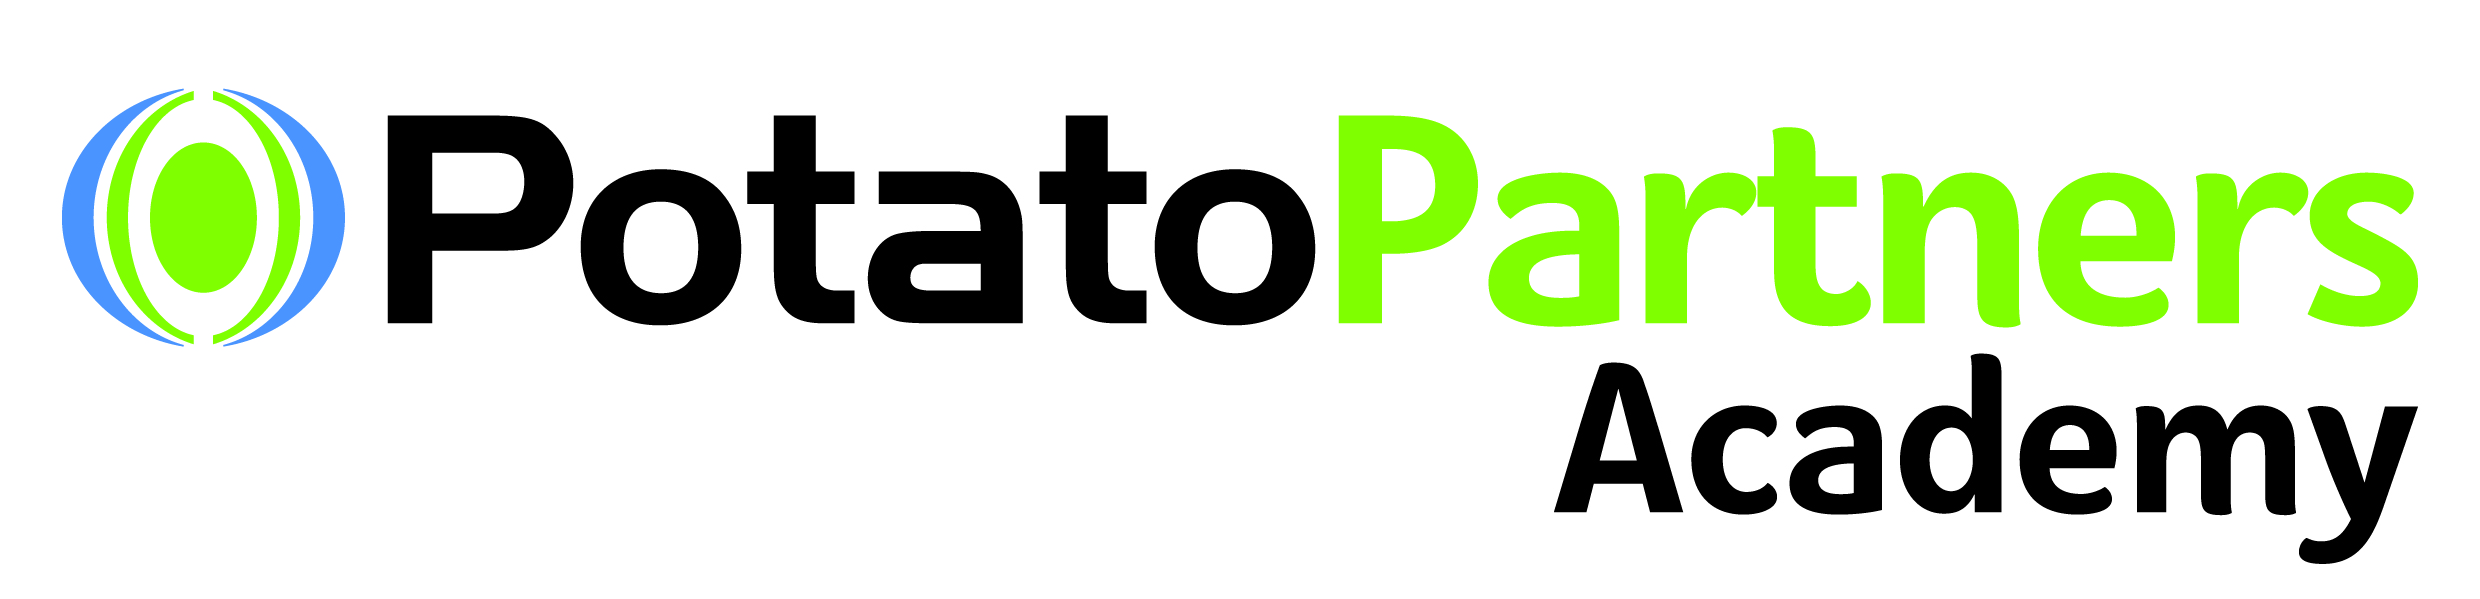 Potato Partners Academy